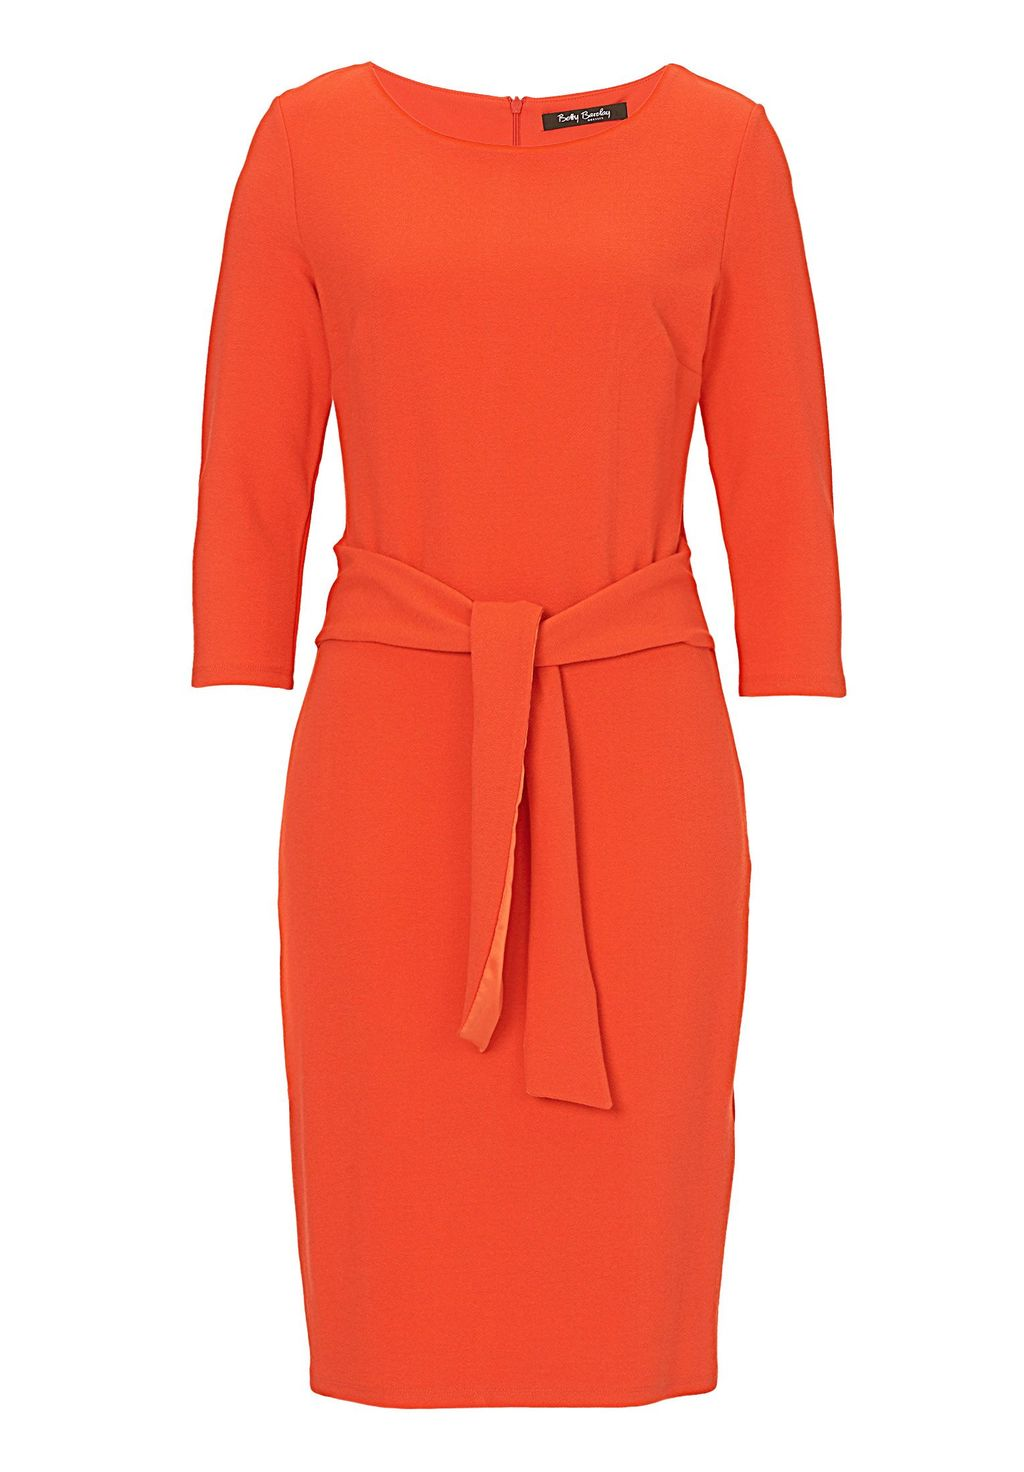 Textured Jersey Dress, Orange - style: shift; neckline: round neck; fit: tailored/fitted; pattern: plain; hip detail: fitted at hip; waist detail: belted waist/tie at waist/drawstring; predominant colour: bright orange; occasions: evening, creative work; length: just above the knee; fibres: polyester/polyamide - 100%; sleeve length: 3/4 length; sleeve style: standard; texture group: crepes; pattern type: fabric; season: s/s 2016; wardrobe: highlight